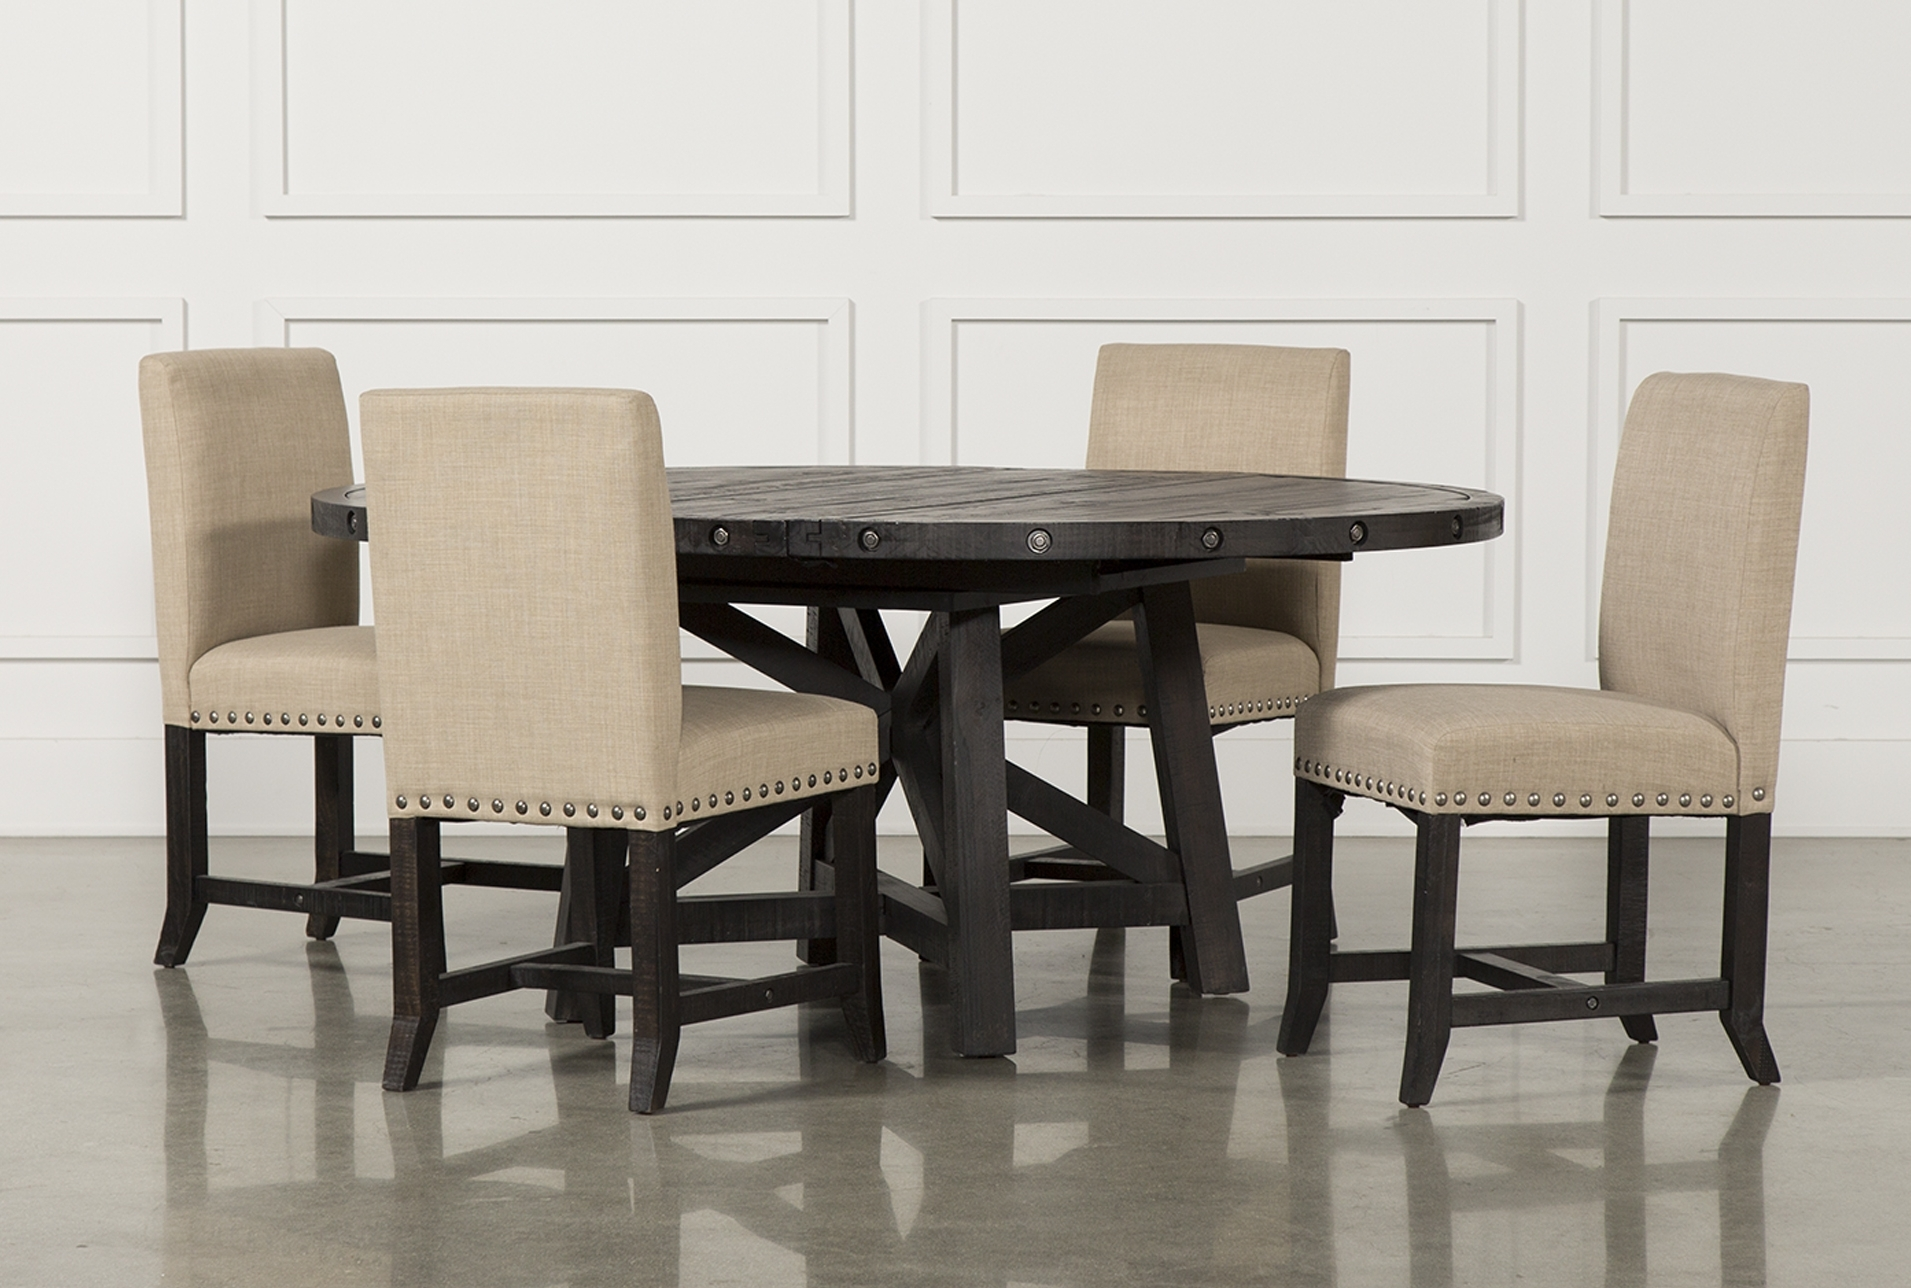 Jaxon 7 Piece Rectangle Dining Sets With Wood Chairs intended for Favorite 5. Jaxon 5 Piece Round Dining Set W Upholstered Chairs Qty 1 Has